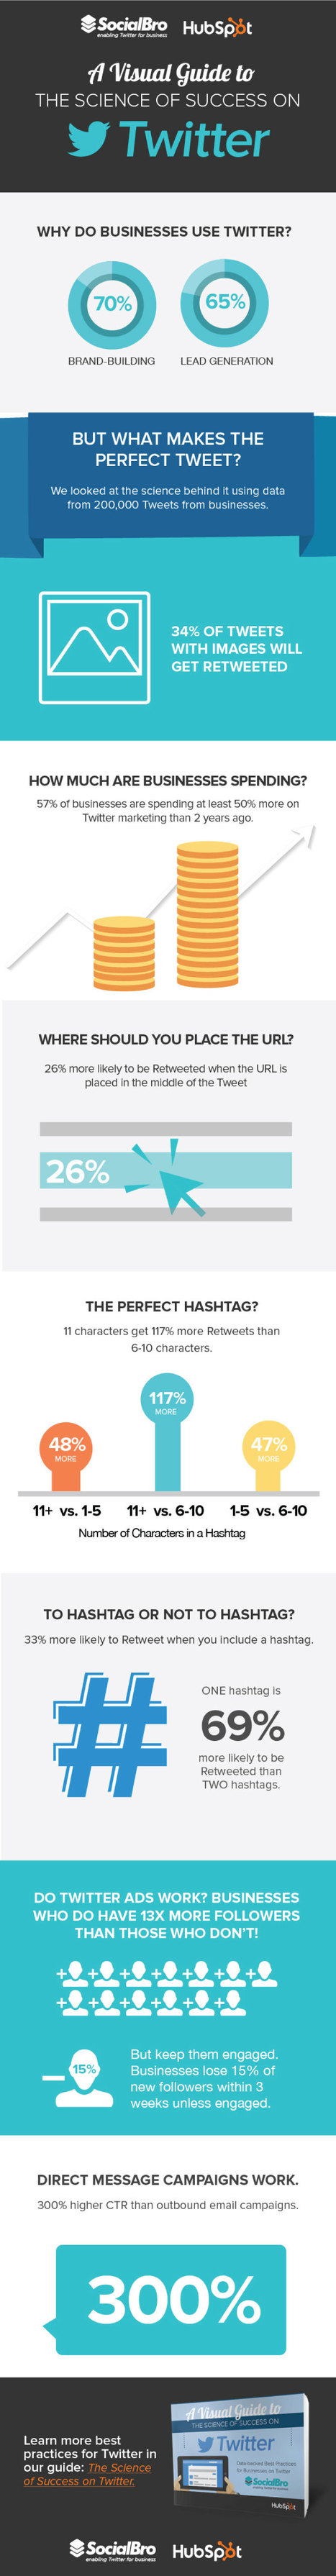 A Visual Guide to the Science of Twitter Success #Infographic | Communication Matters | Scoop.it